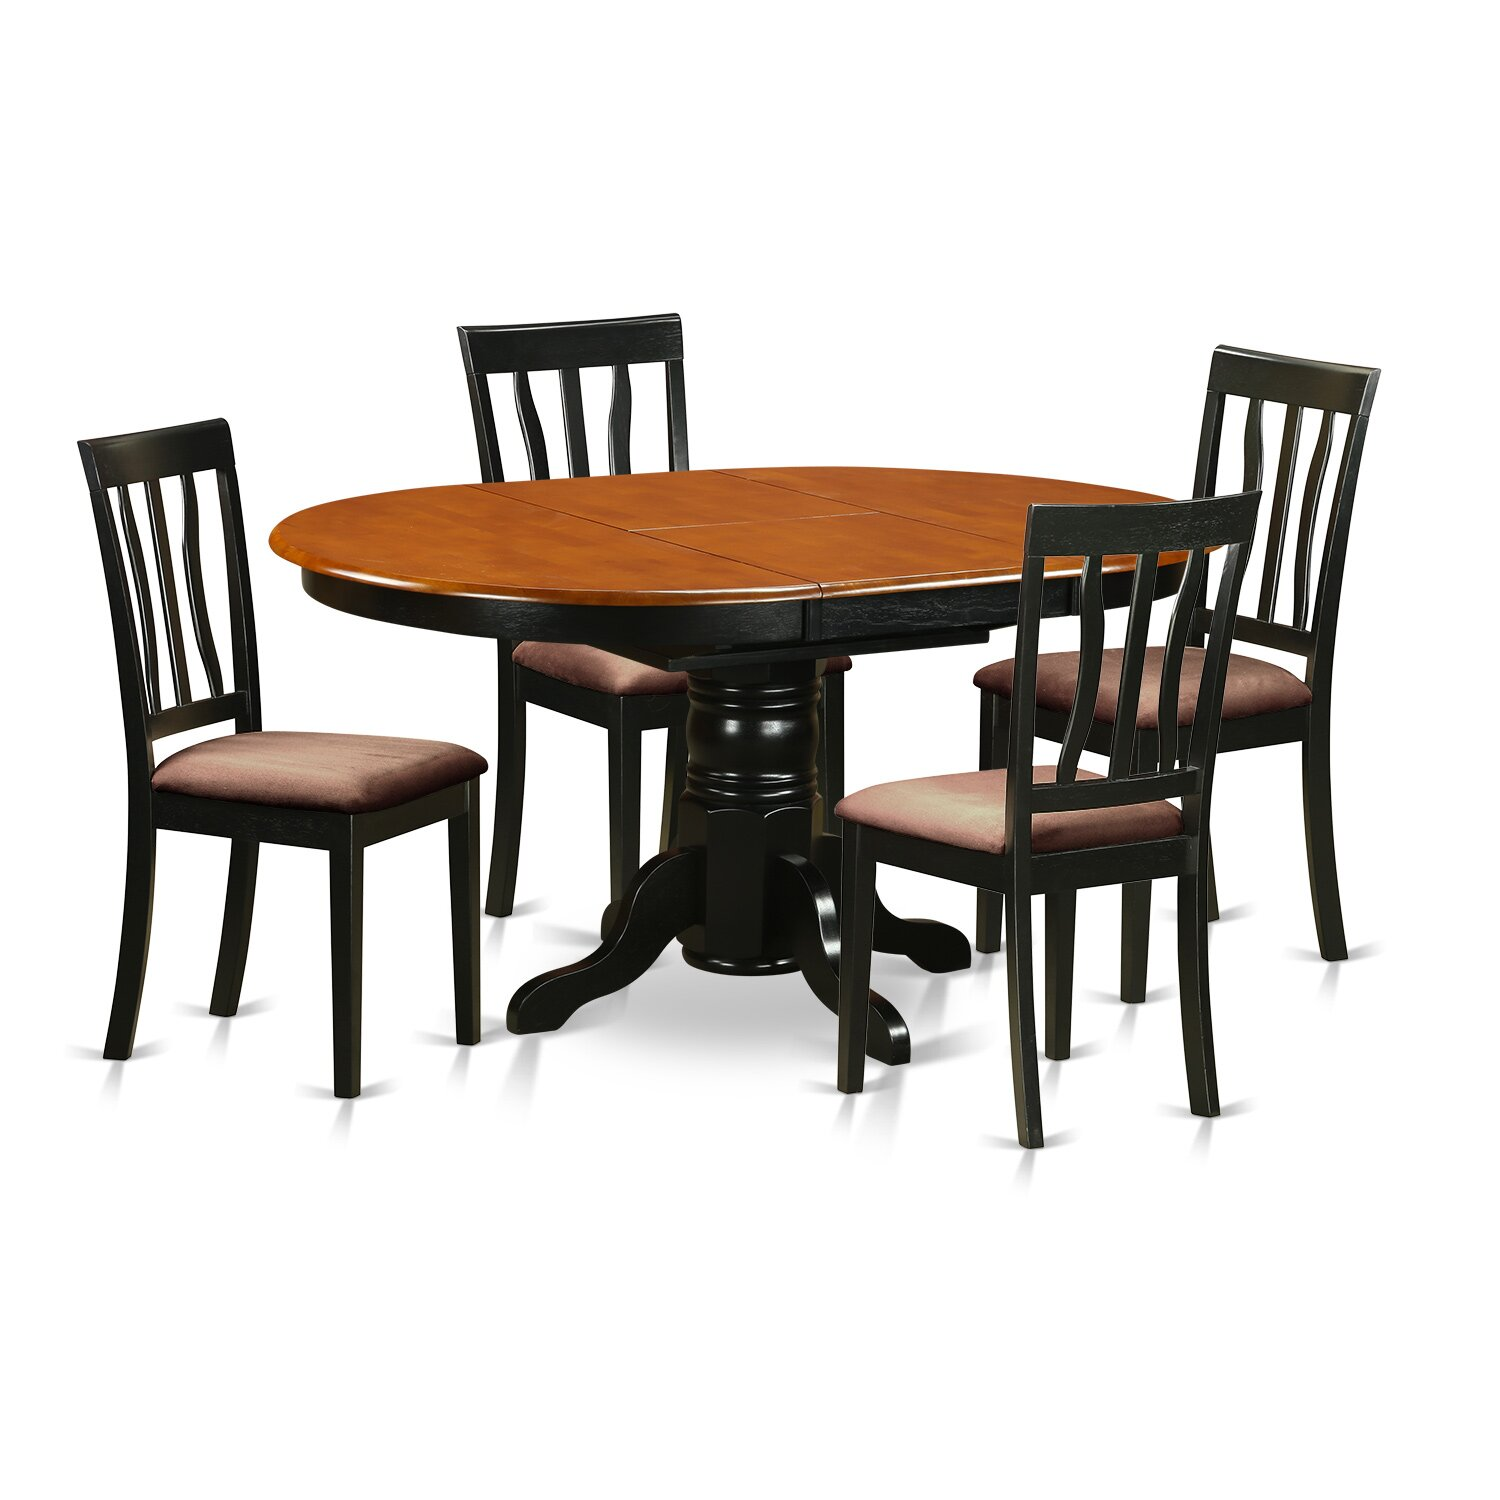 Wooden importers avon 5 piece dining set wayfair for 5 piece dining set